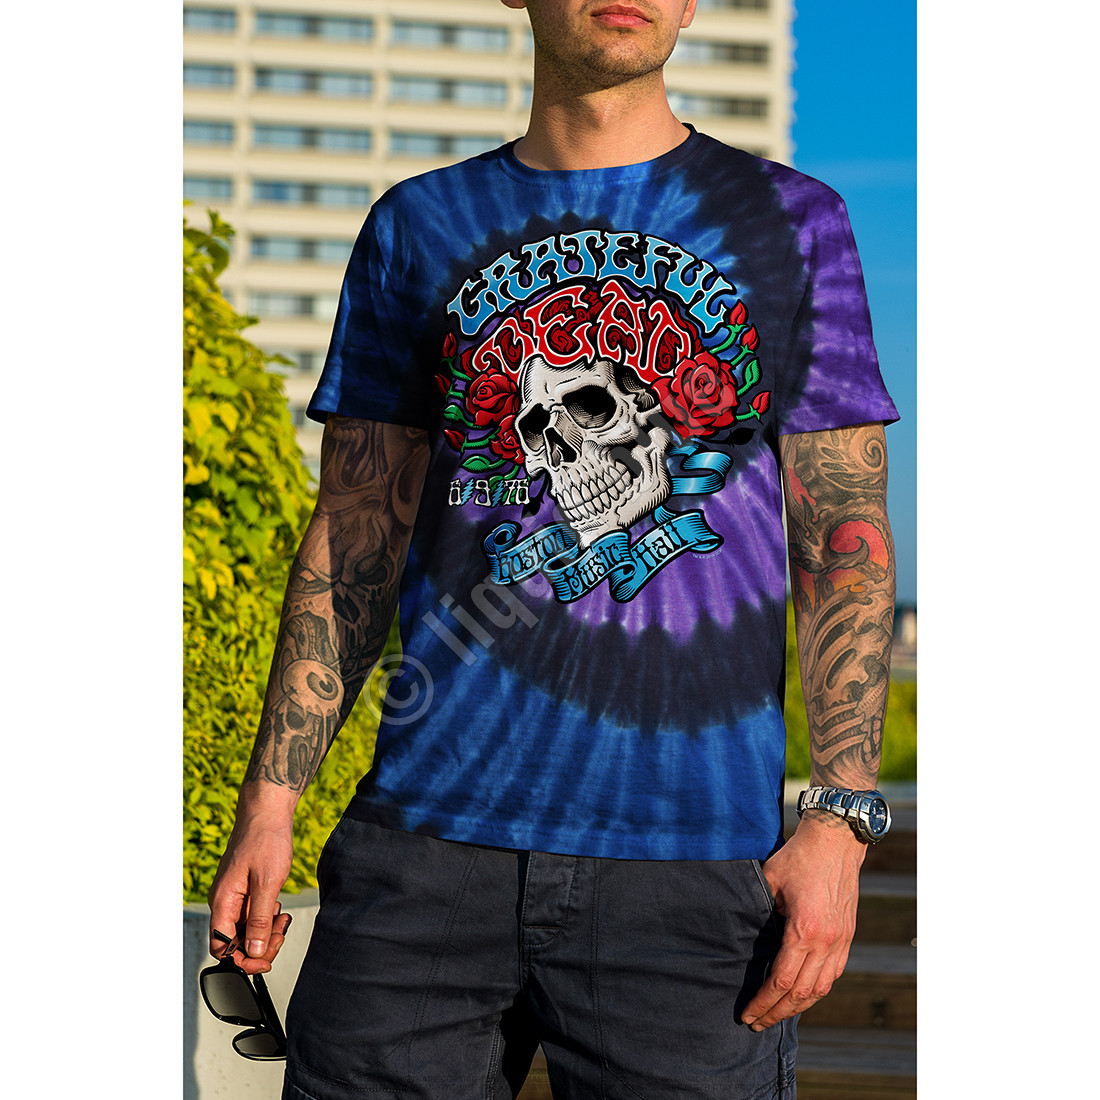 Boston Music Hall Tie-Dye T-Shirt